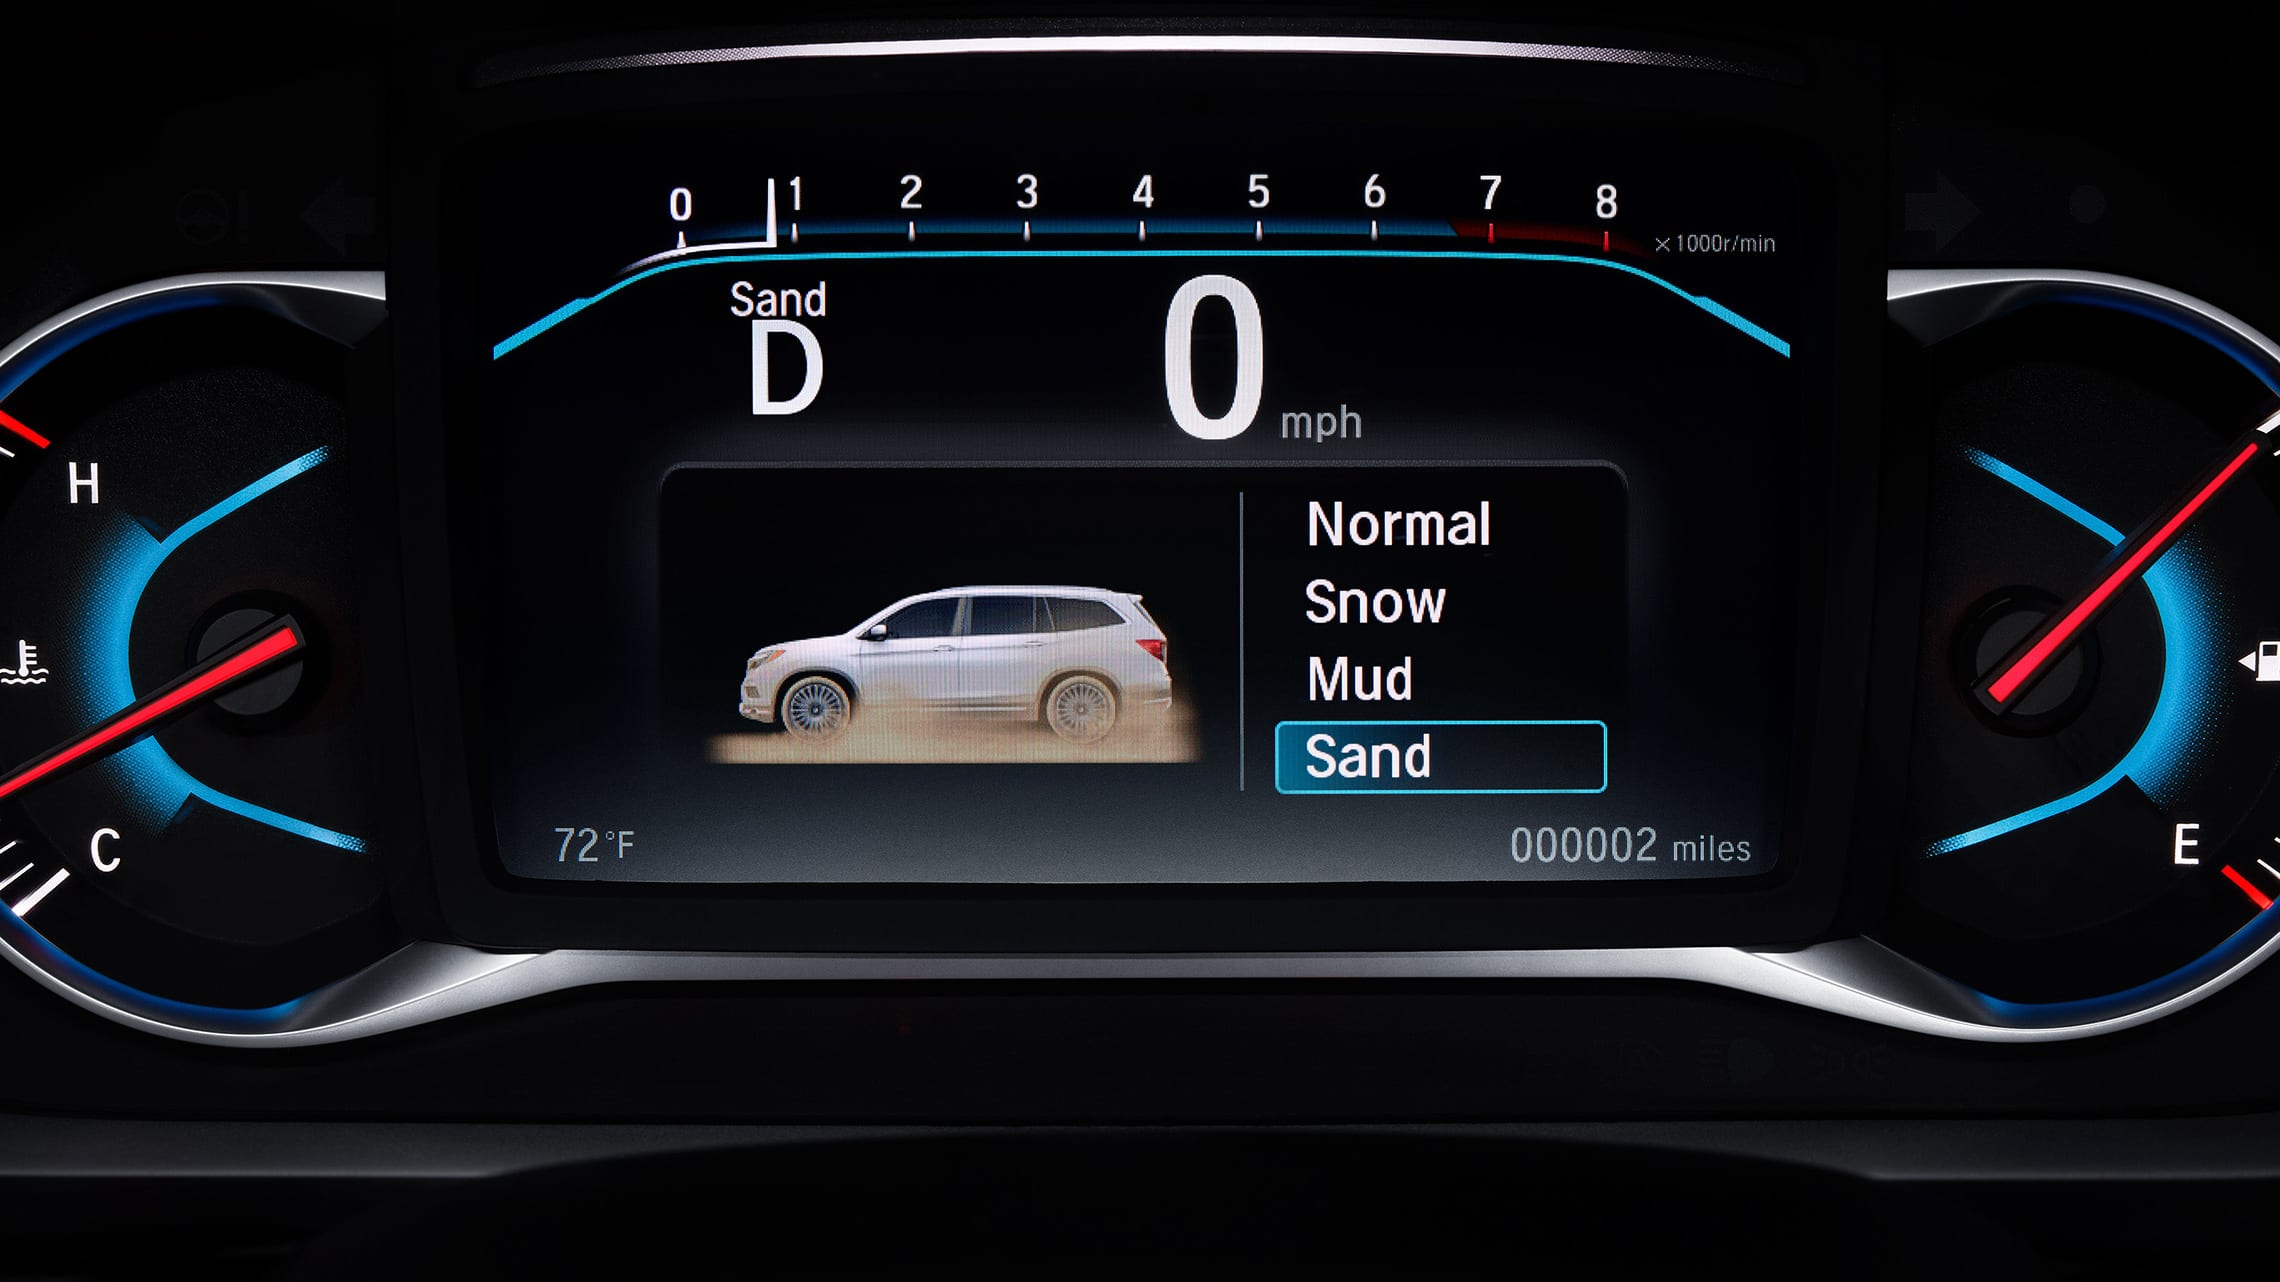 Intelligent Traction Management detail in 2020 Honda Pilot.